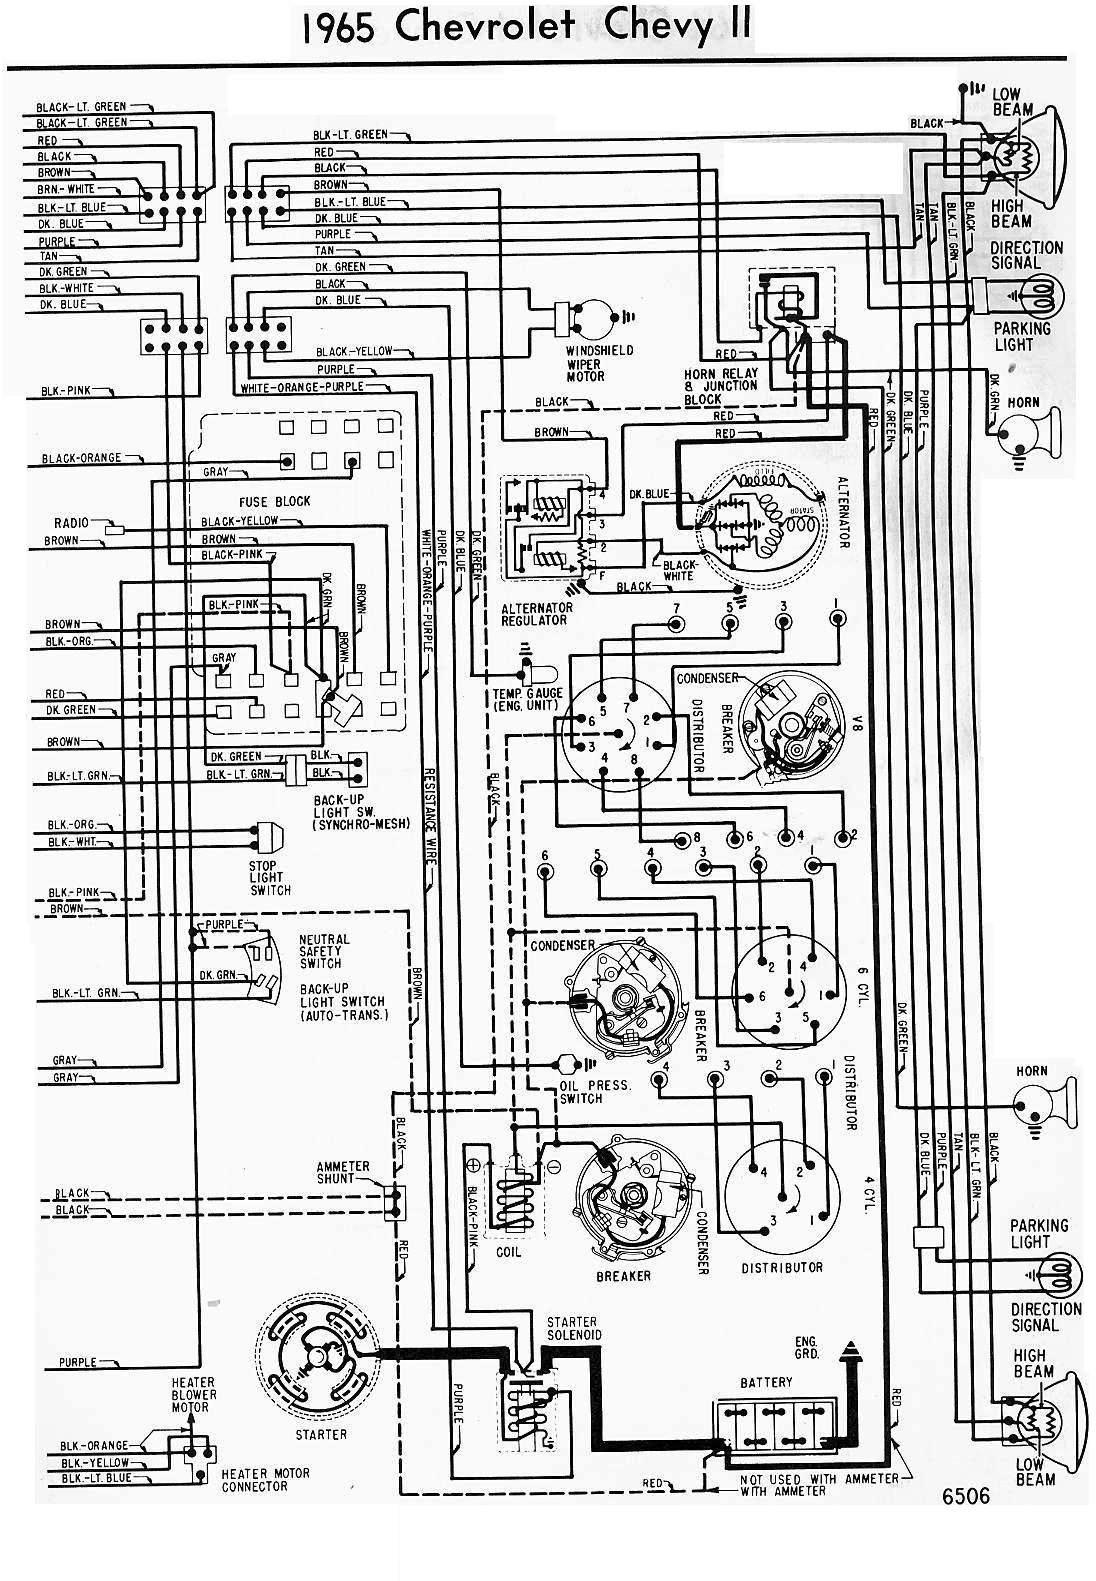 1969 Chevelle Brake Light Wiring Diagram 72 Starter Wire 1965 Chevrolet Chevy Ii All About Horn